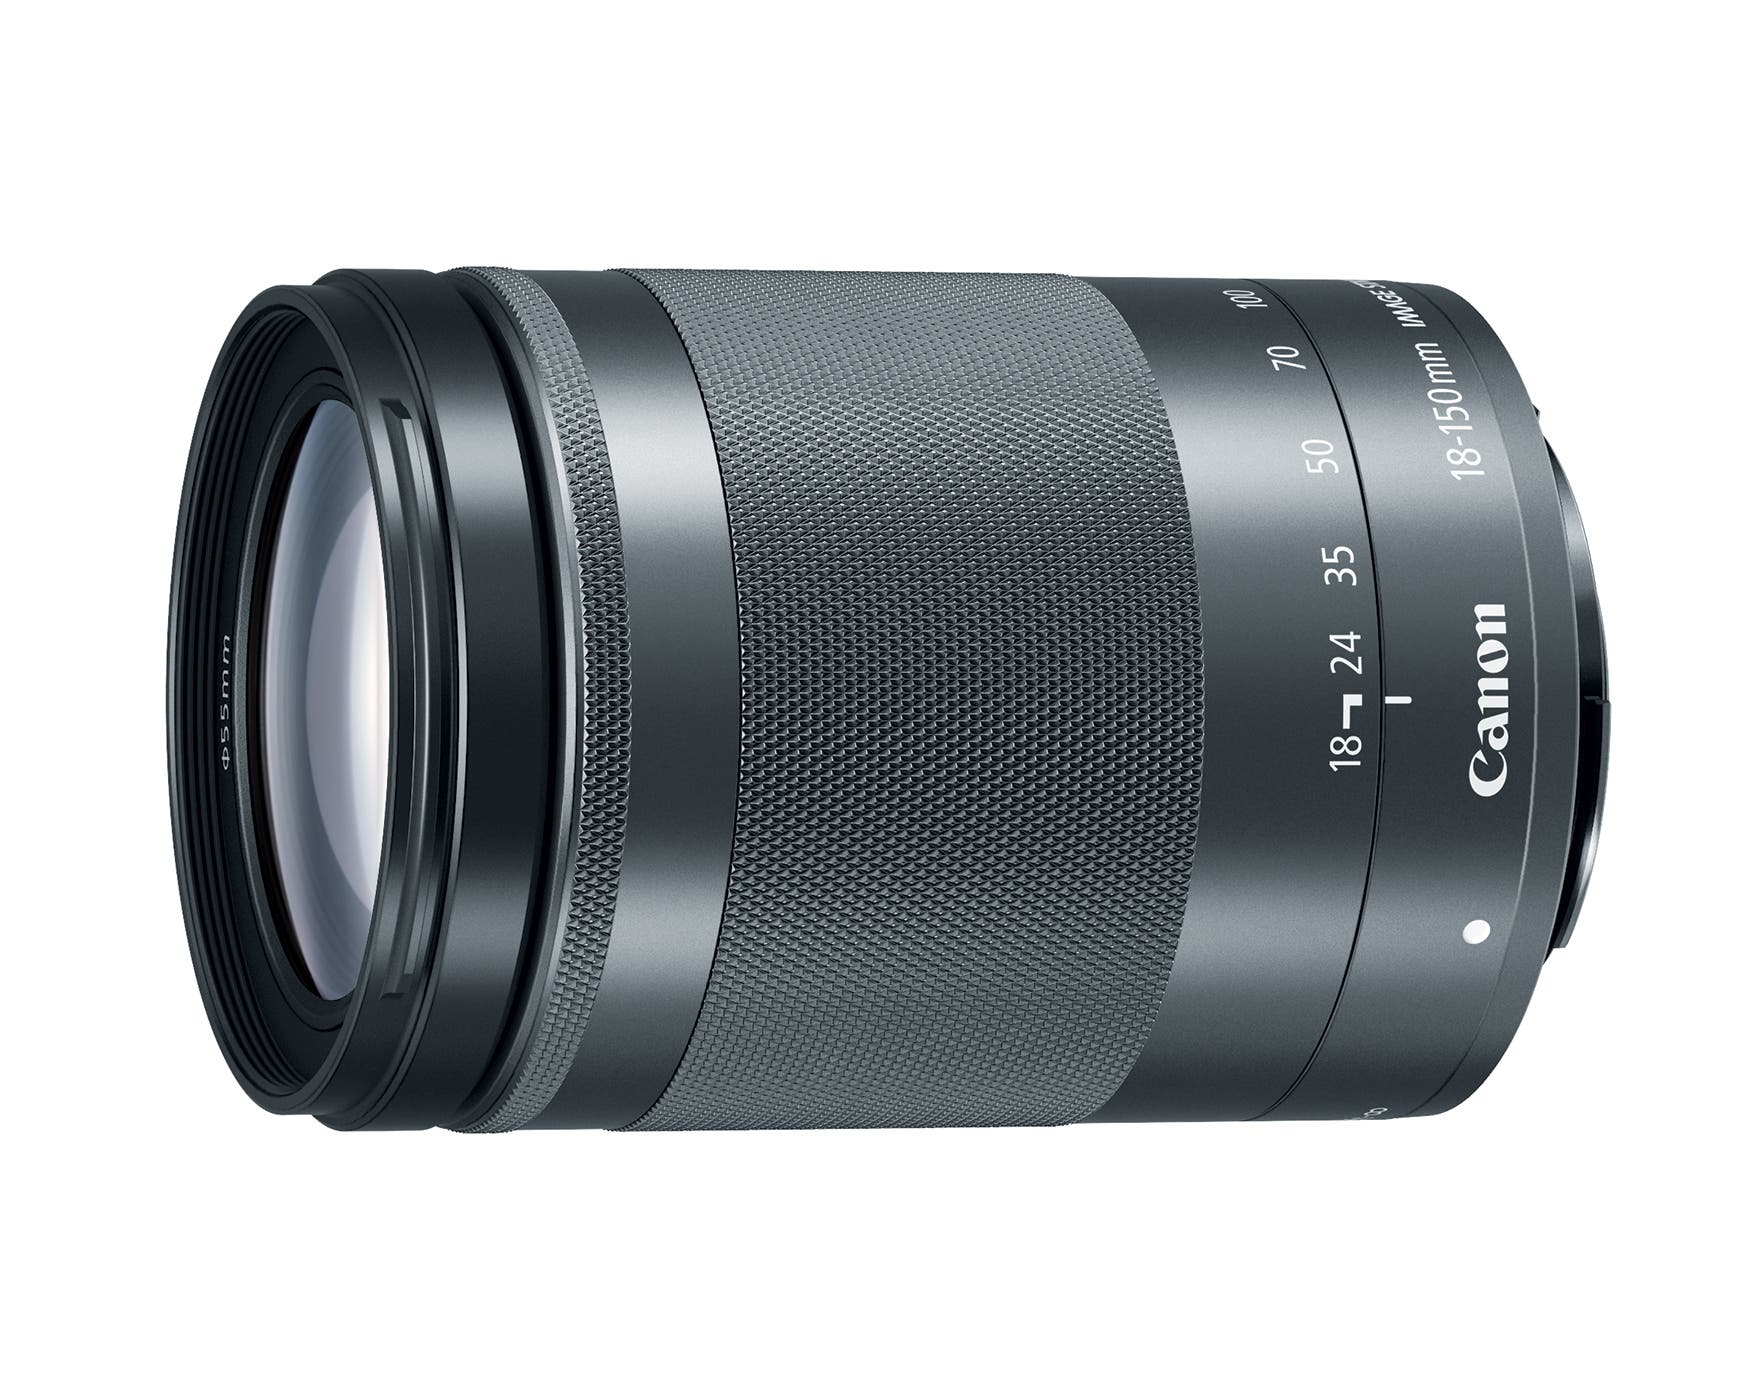 Canon's Latest EF-M Lens Is Another Vari-Aperture Consumer Zoom: the 18-150mm F/3.5-6.3